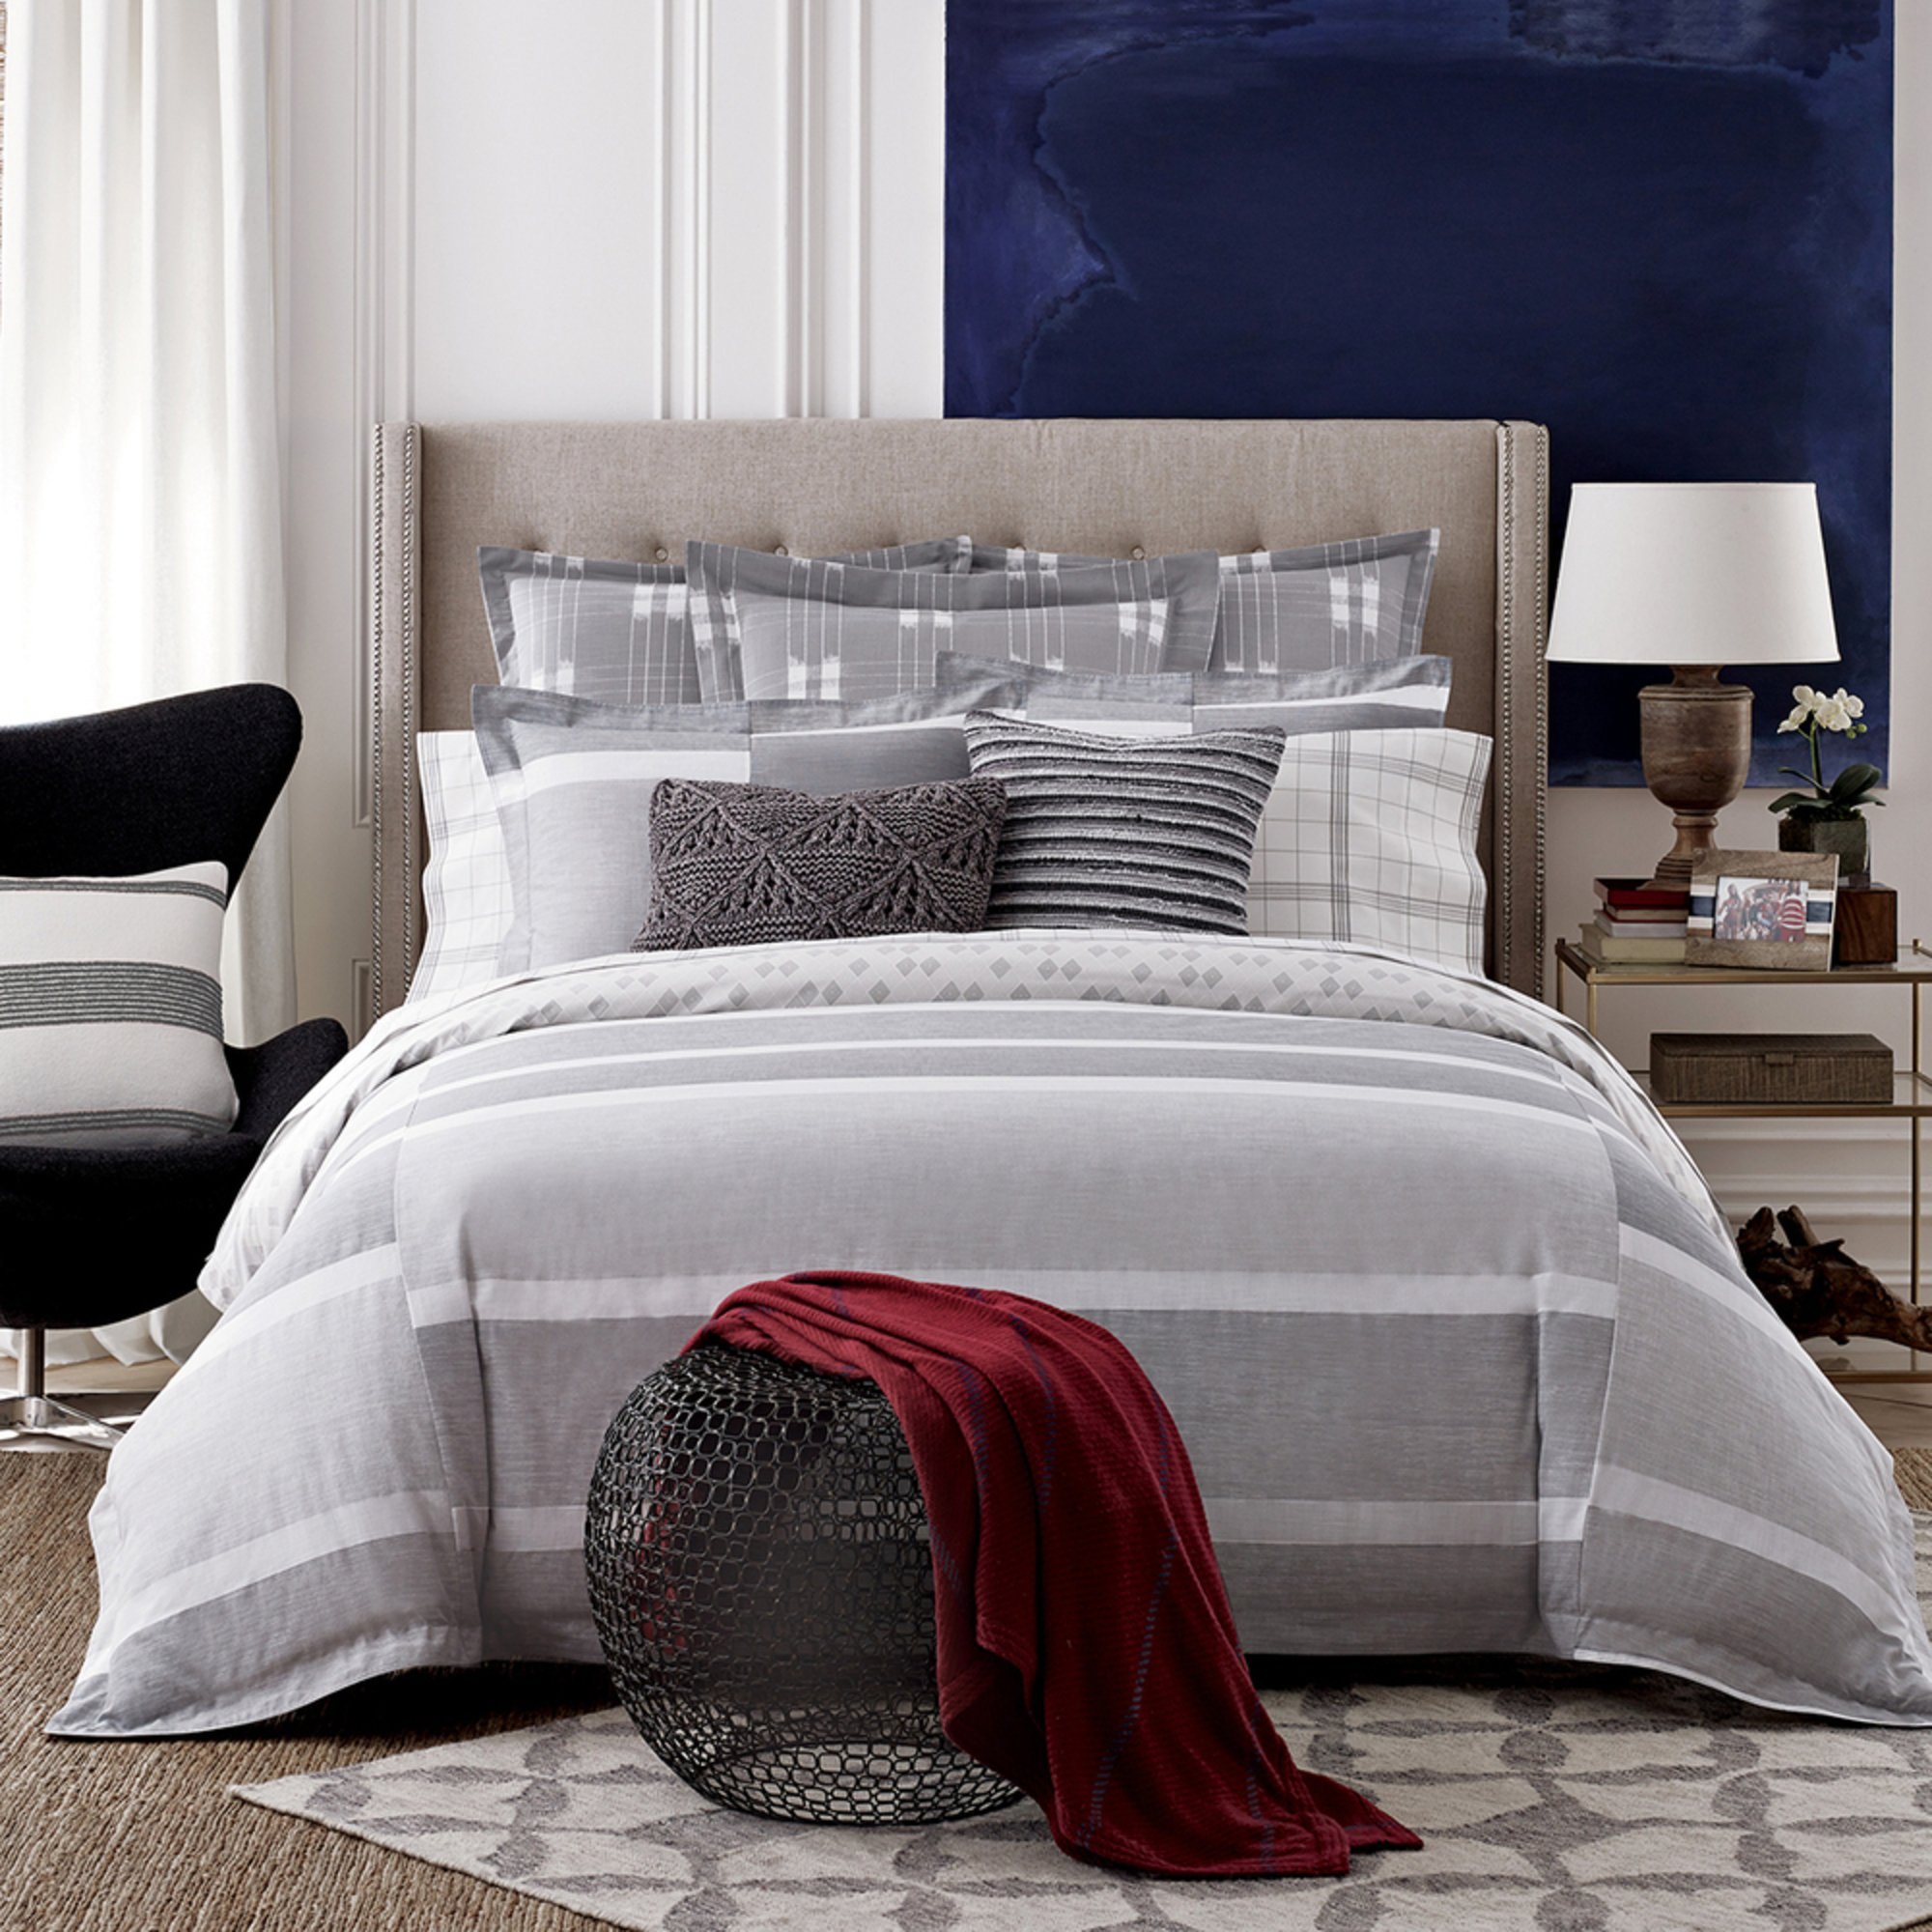 pinterest comforter striped bed chatham home ideas bedding bridge pin set navy street